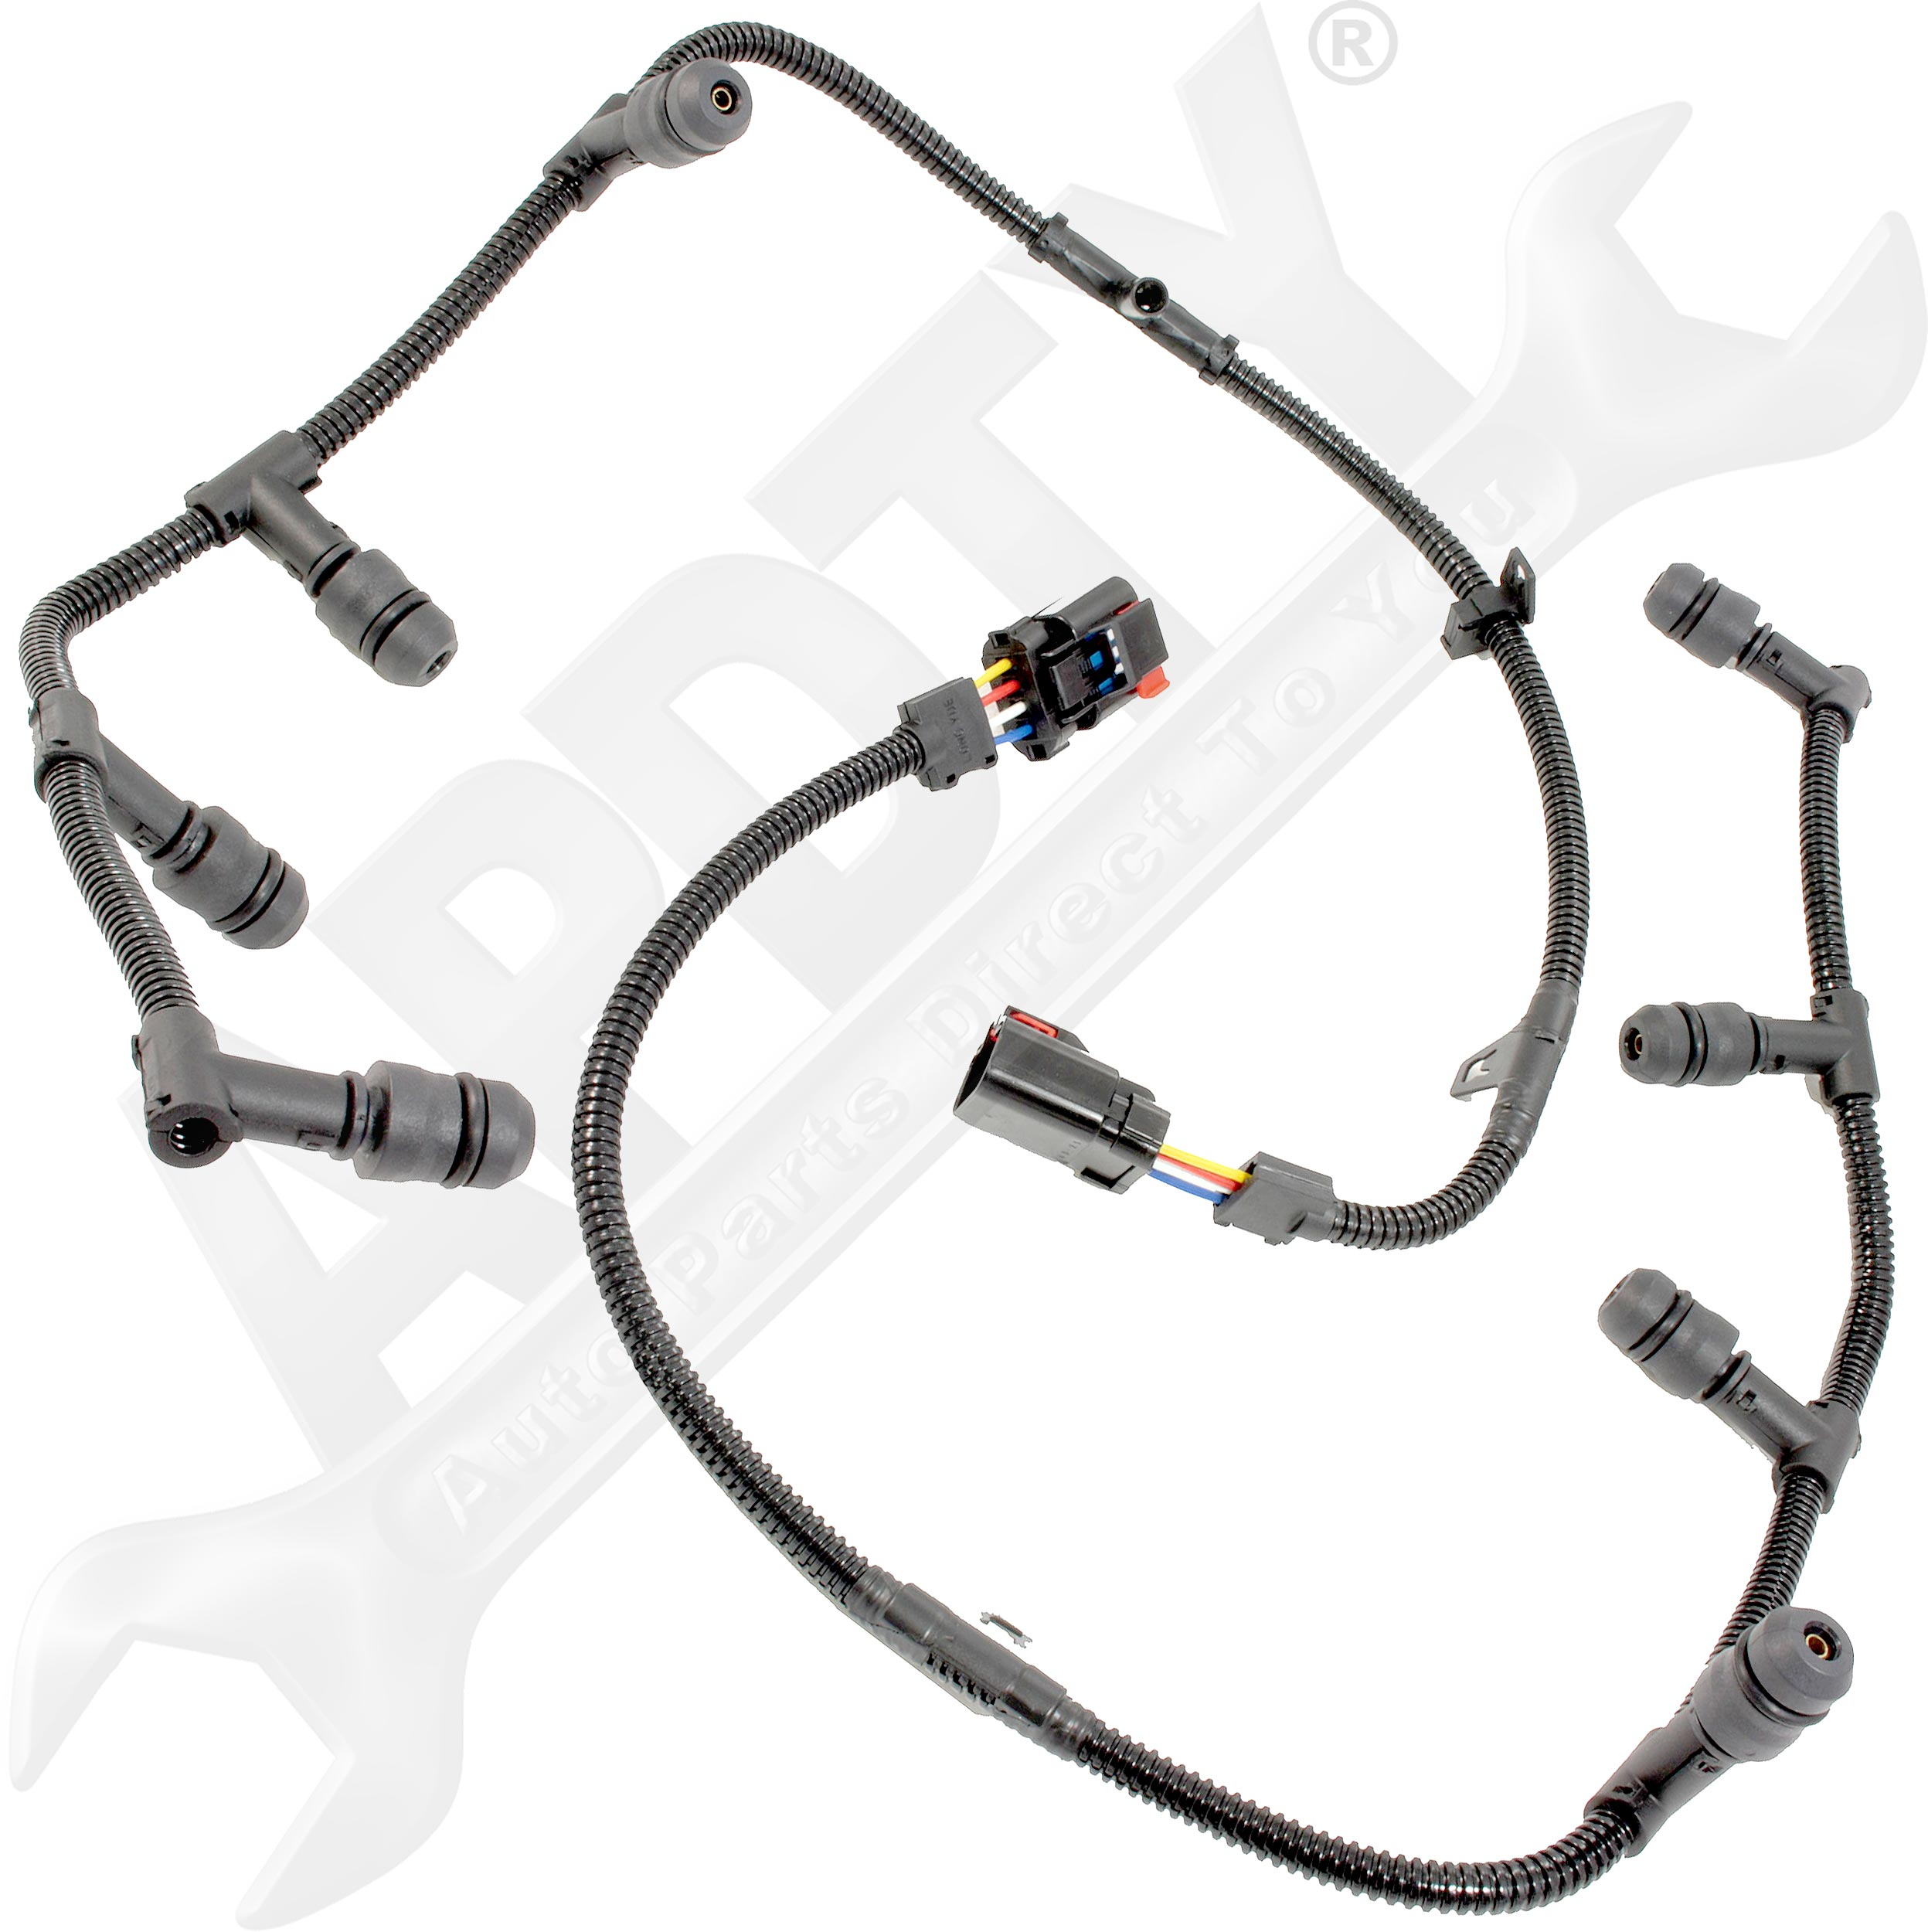 Apdty Glow Plug Wiring Harness Assembly Left Amp Right For Ford 6 0lsel